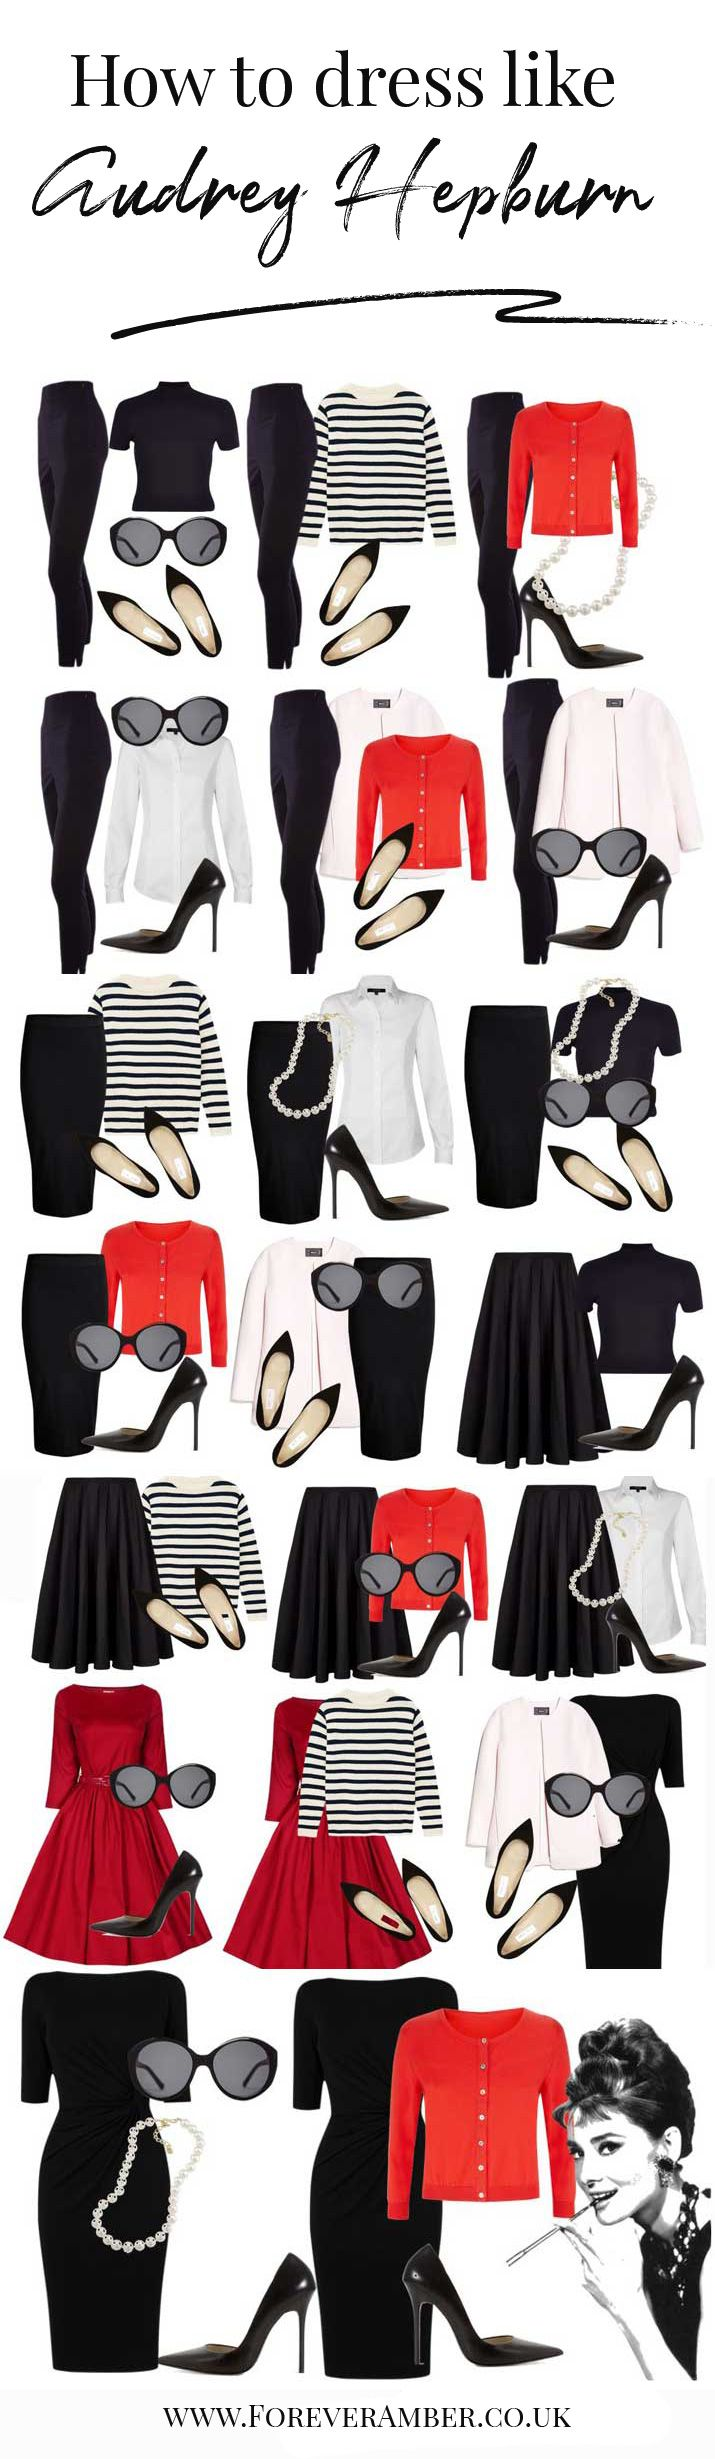 how to dress like Audrey Hepburn: create an Audrey Hepburn-inspired mix and match capsule wardrobe